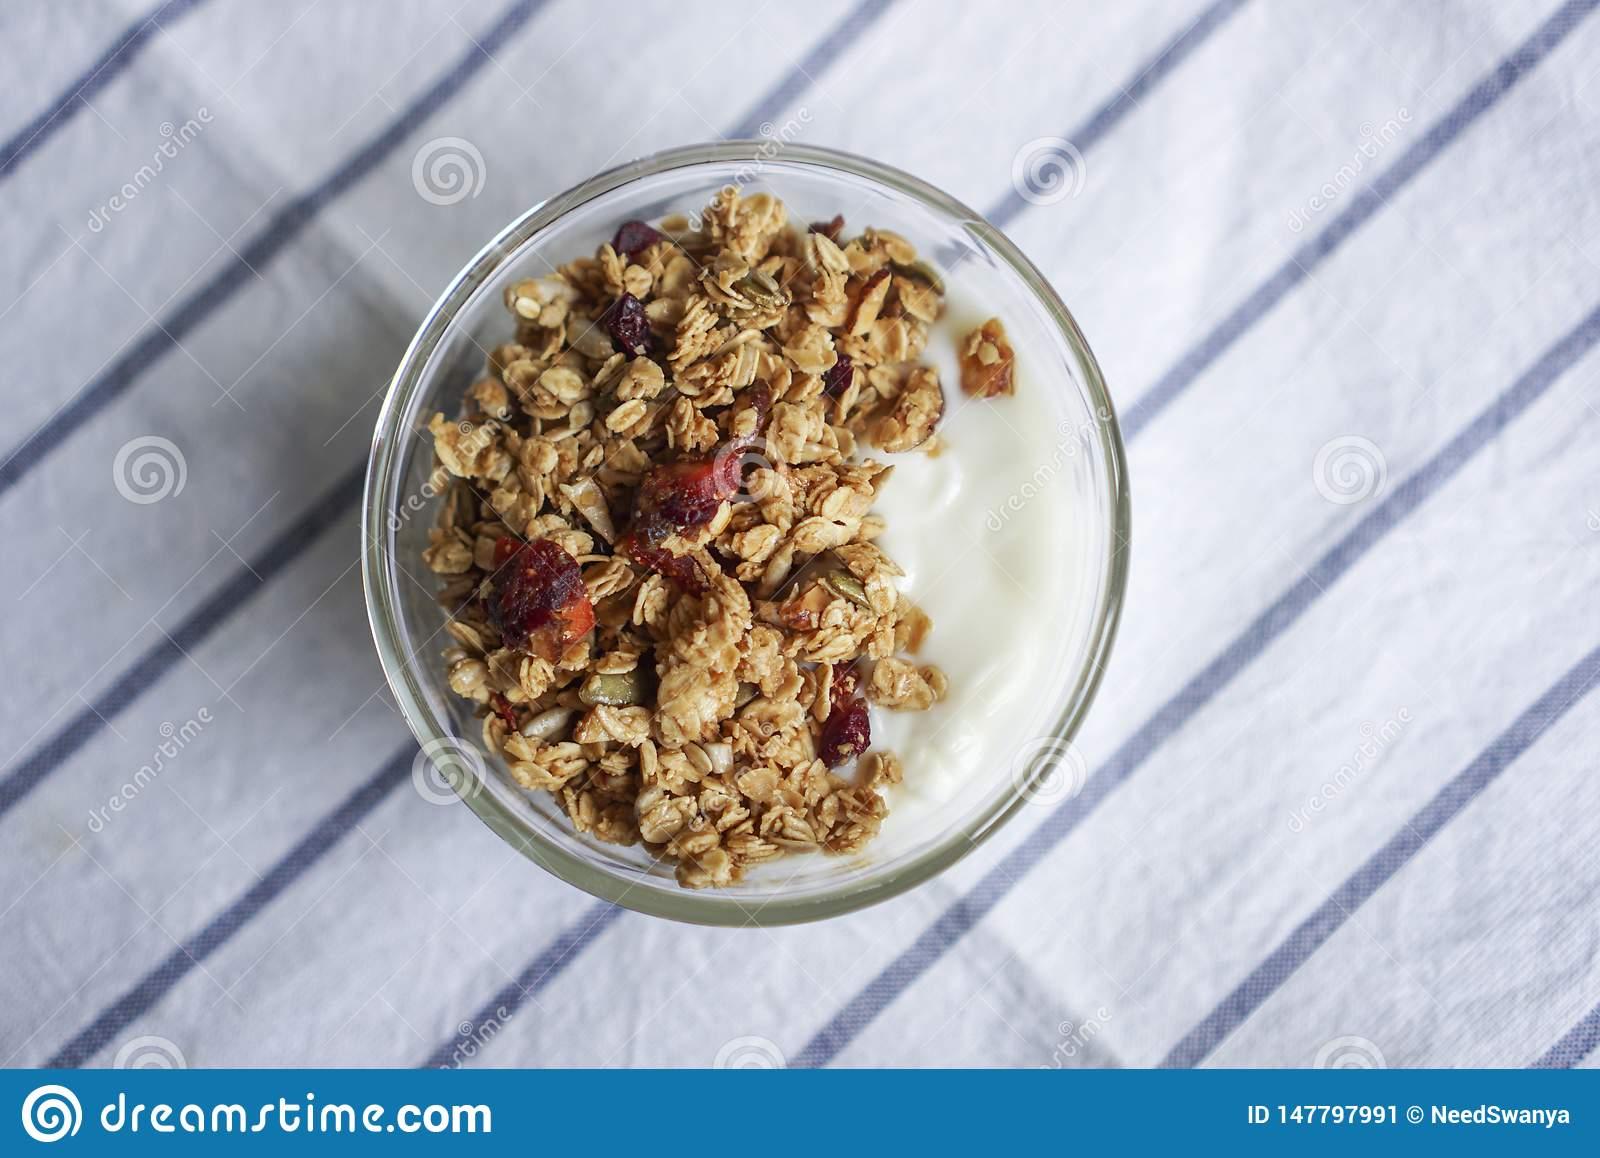 A bowl of Mixed berry granola.